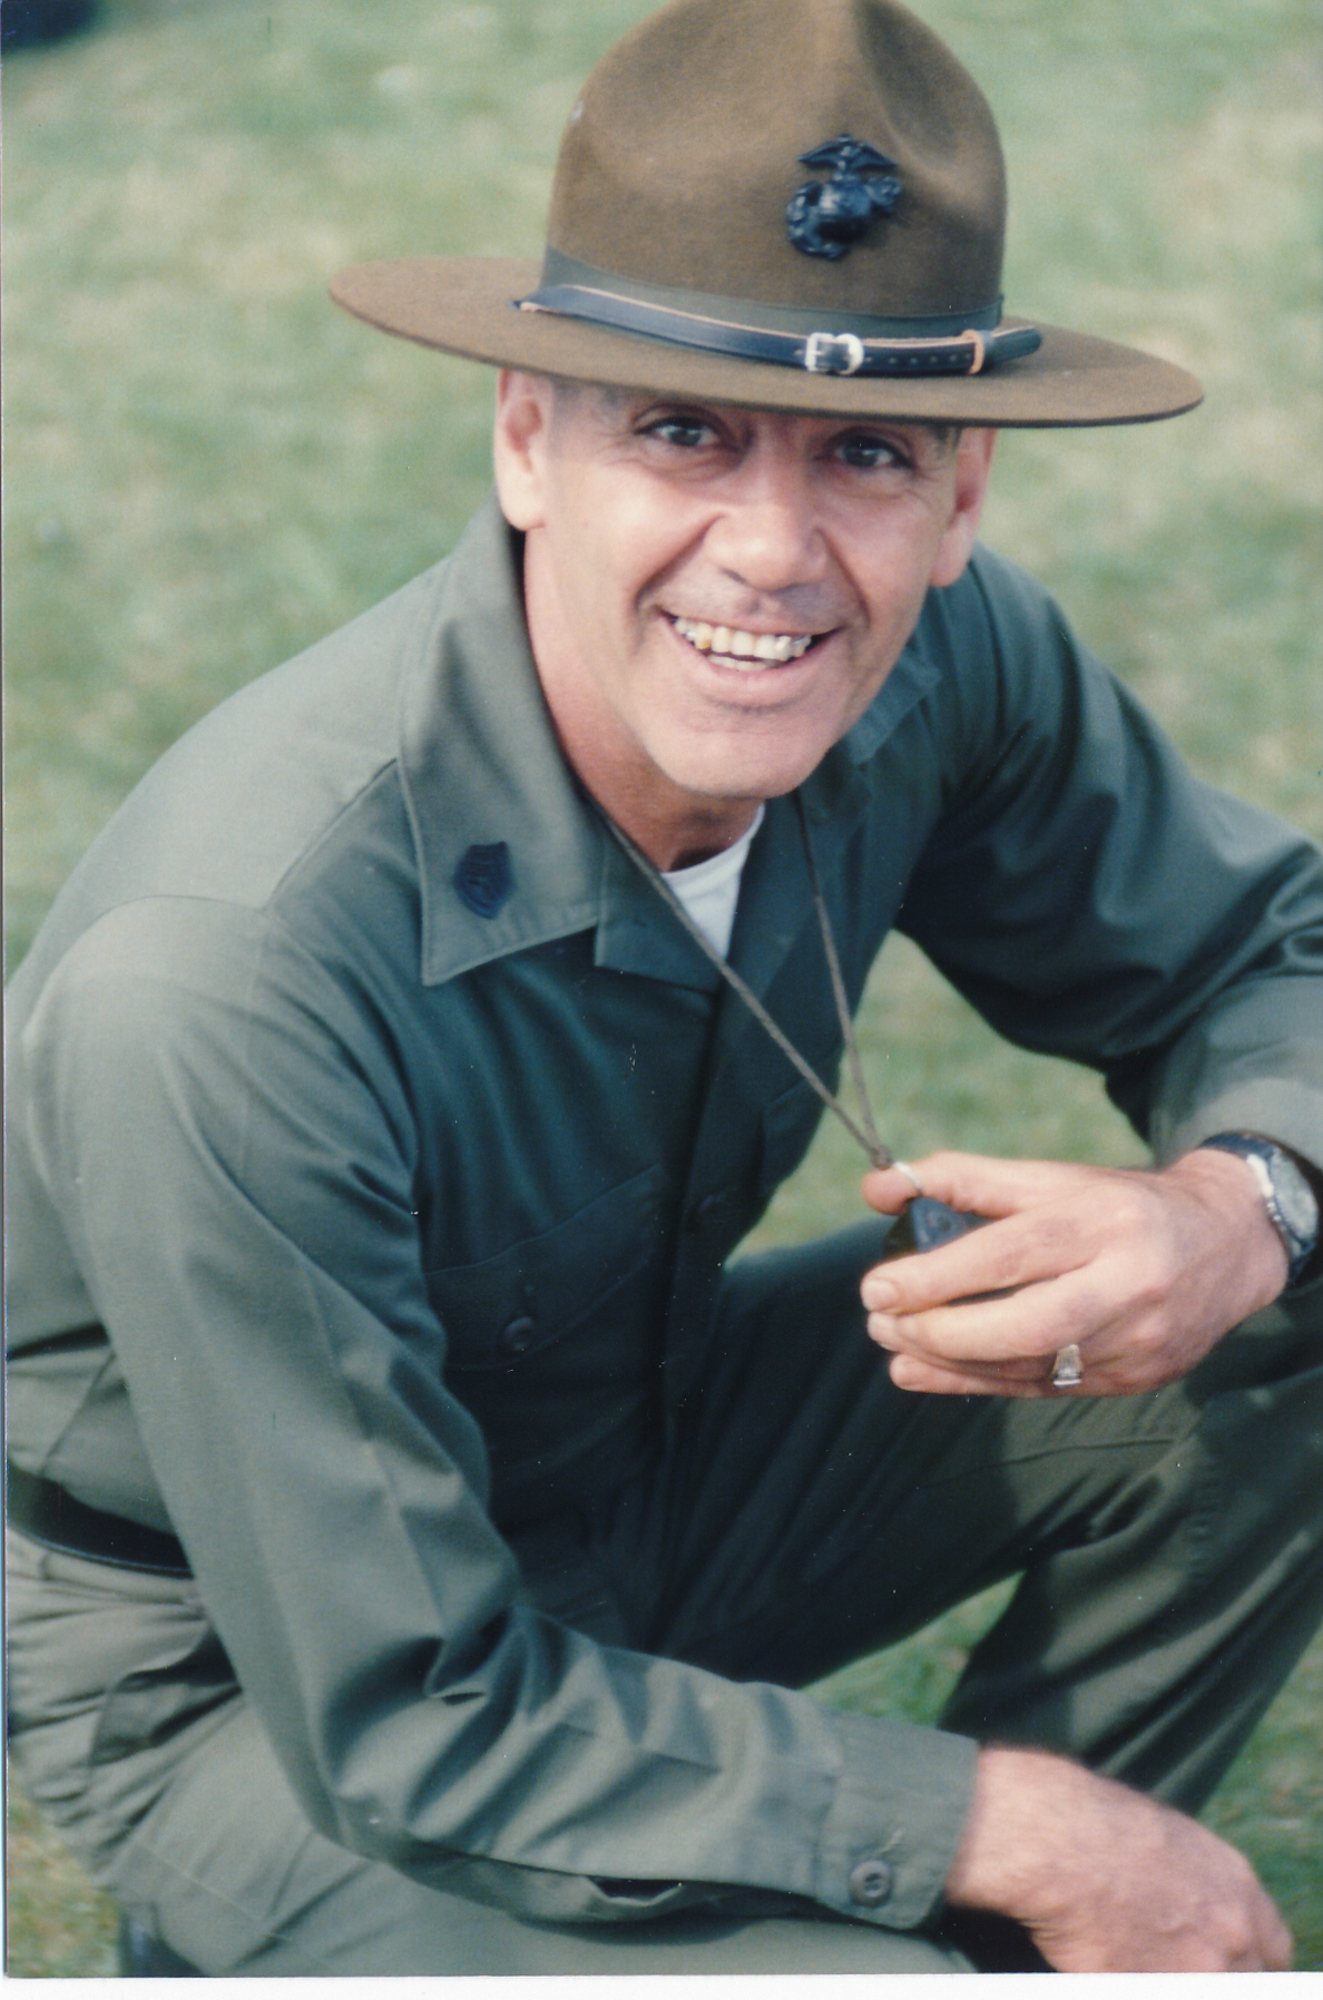 Gunnery Sgt. R. Lee Ermey, on the set of Full Metal Jacket playing the sadistic drill instructor Gunnery Sgt. Hartman. (Photo courtesy R. Lee Ermey's agent Bill Rogin)